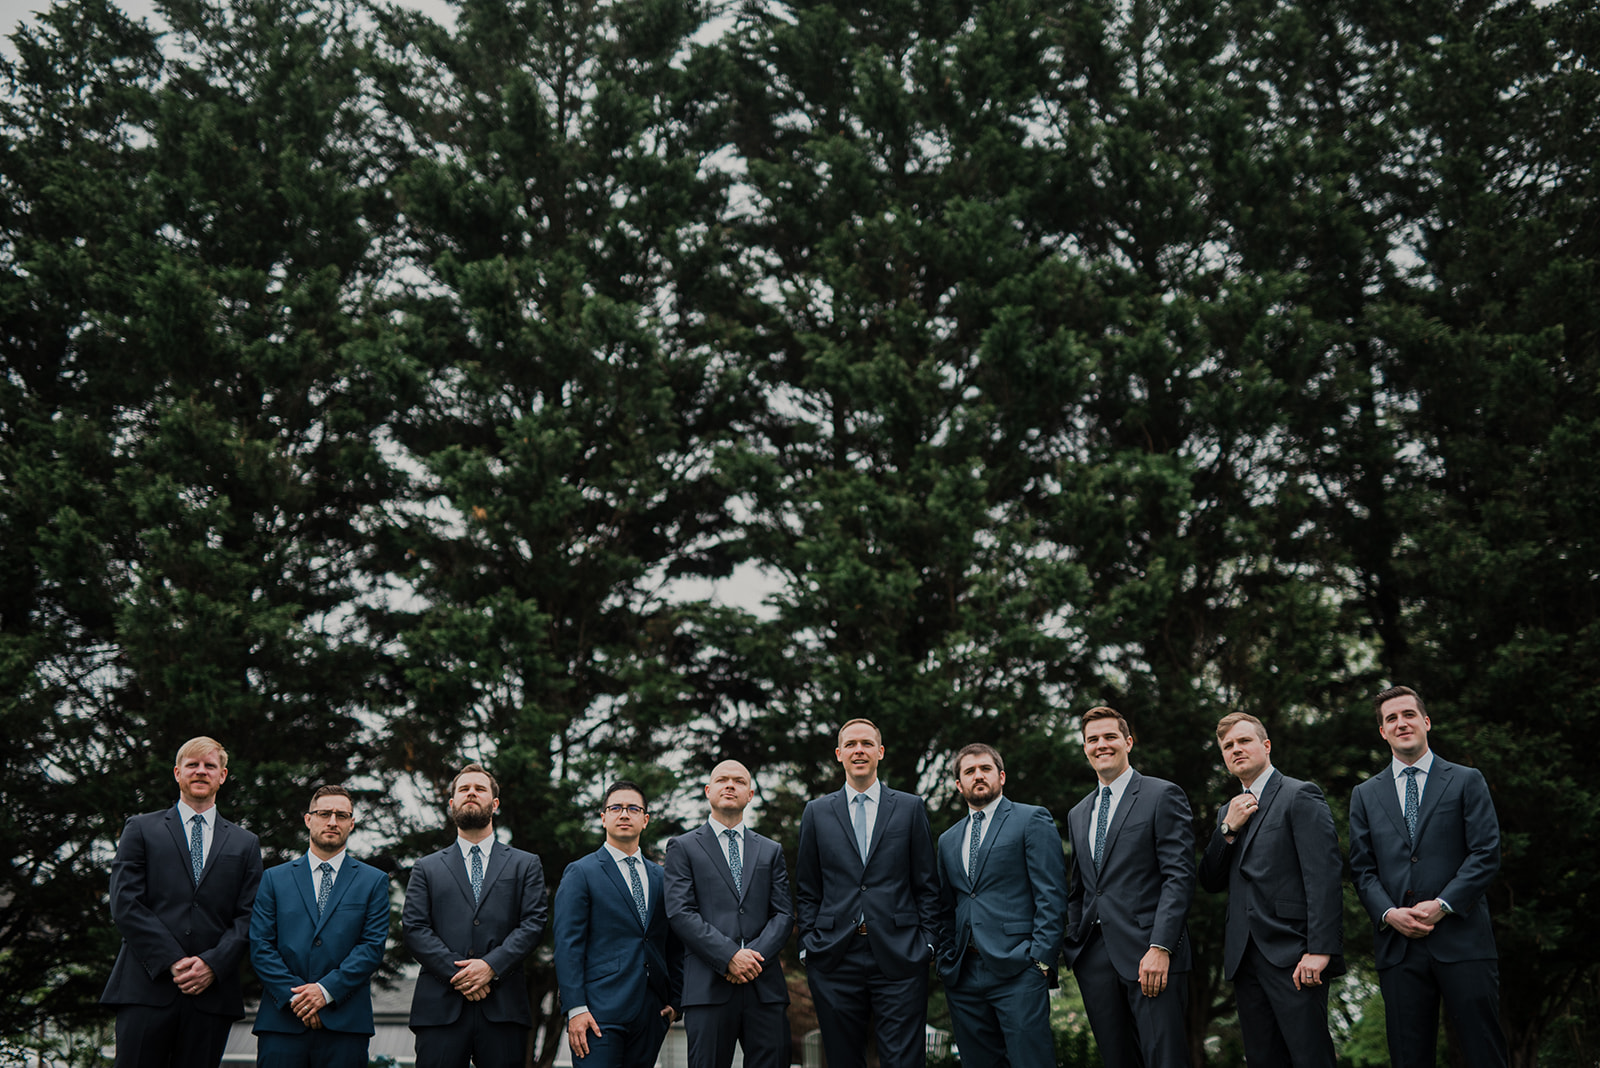 The groomsmen gather together before an outdoor wedding ceremony at Blue Hill Farm in Waterford, VA.